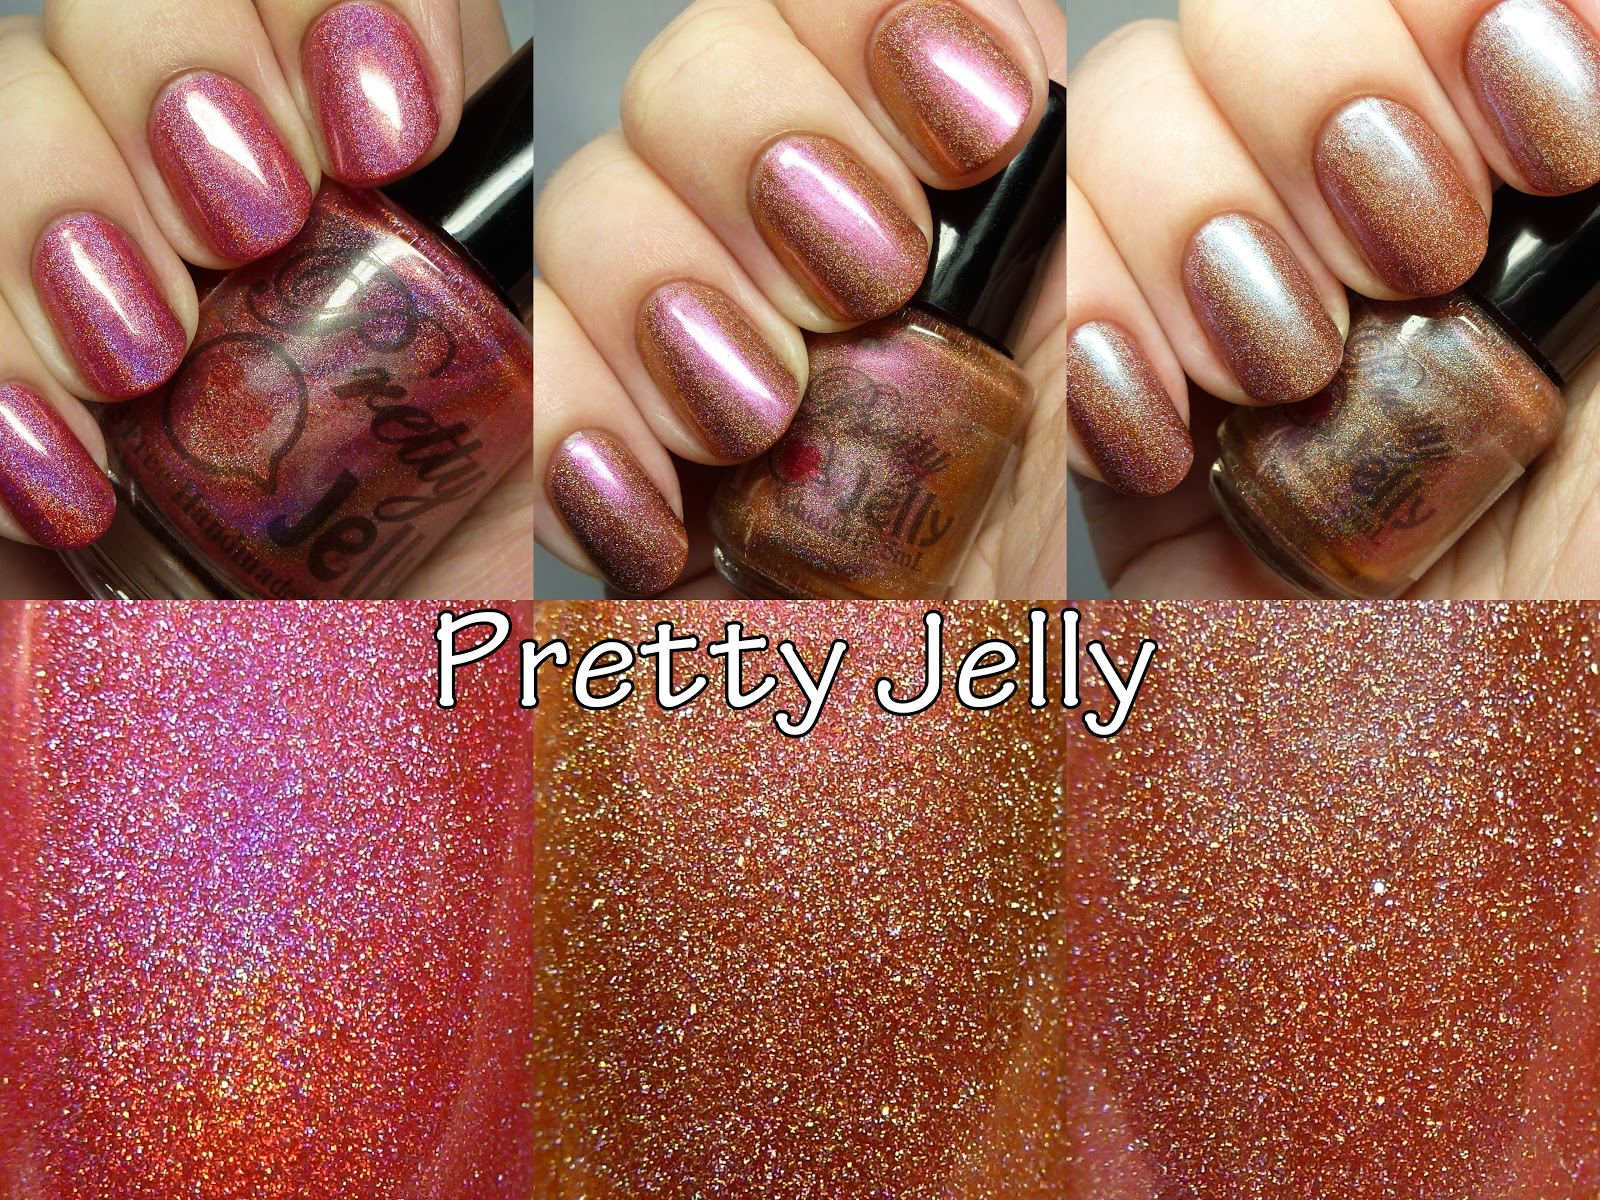 The Polished Hippy: Pretty Jelly Nail Polish swatches